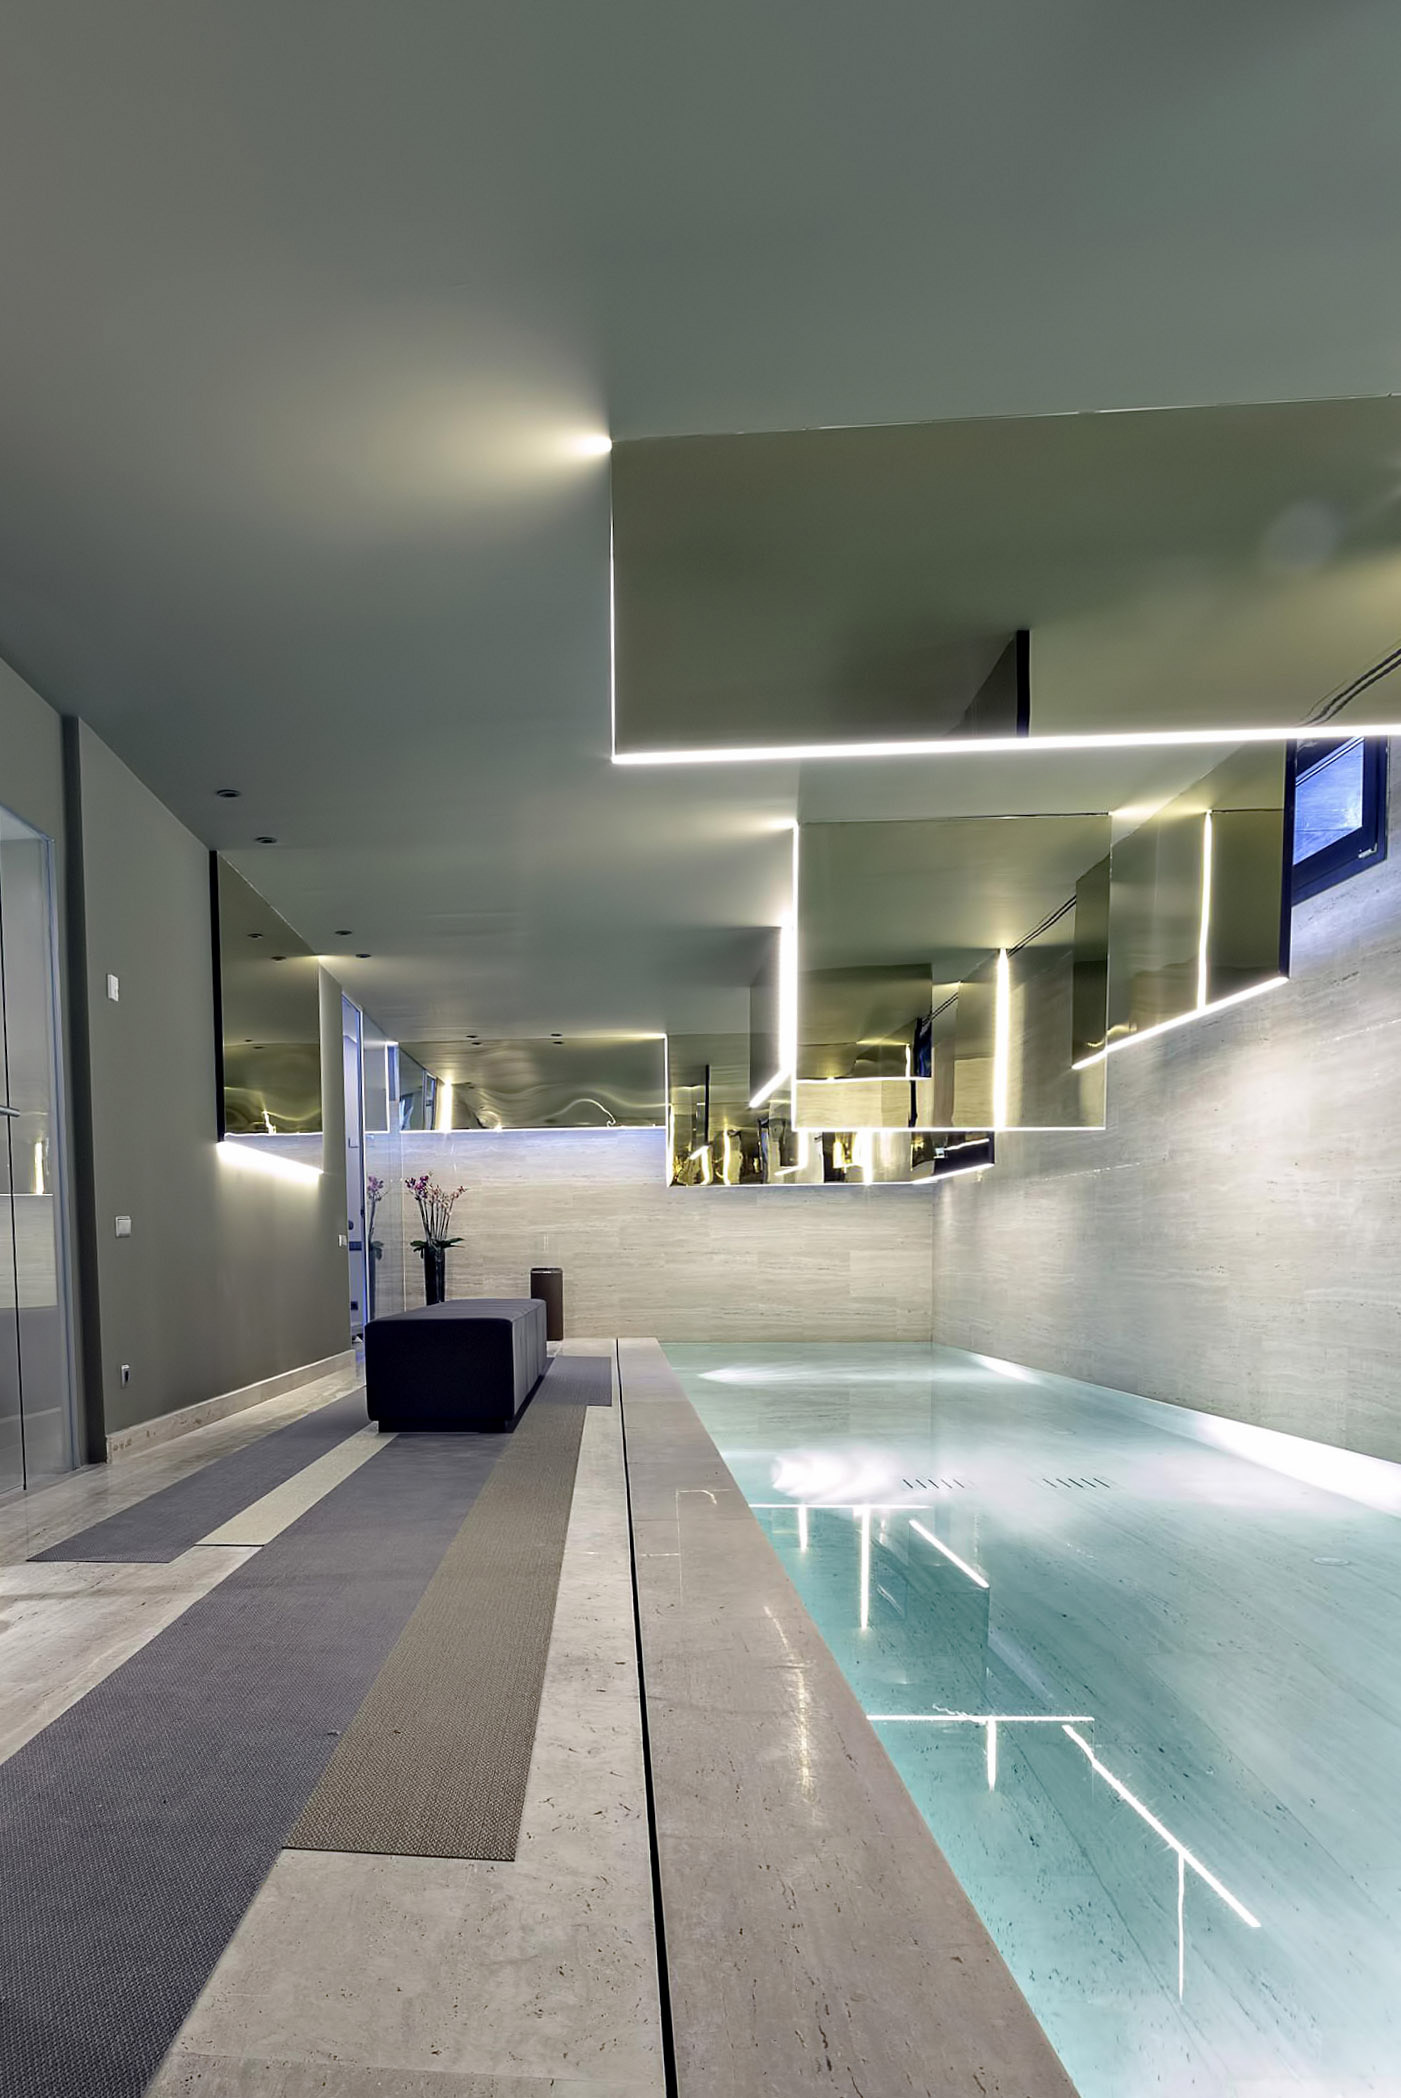 LV House Luxury Residence - Madrid, Spain